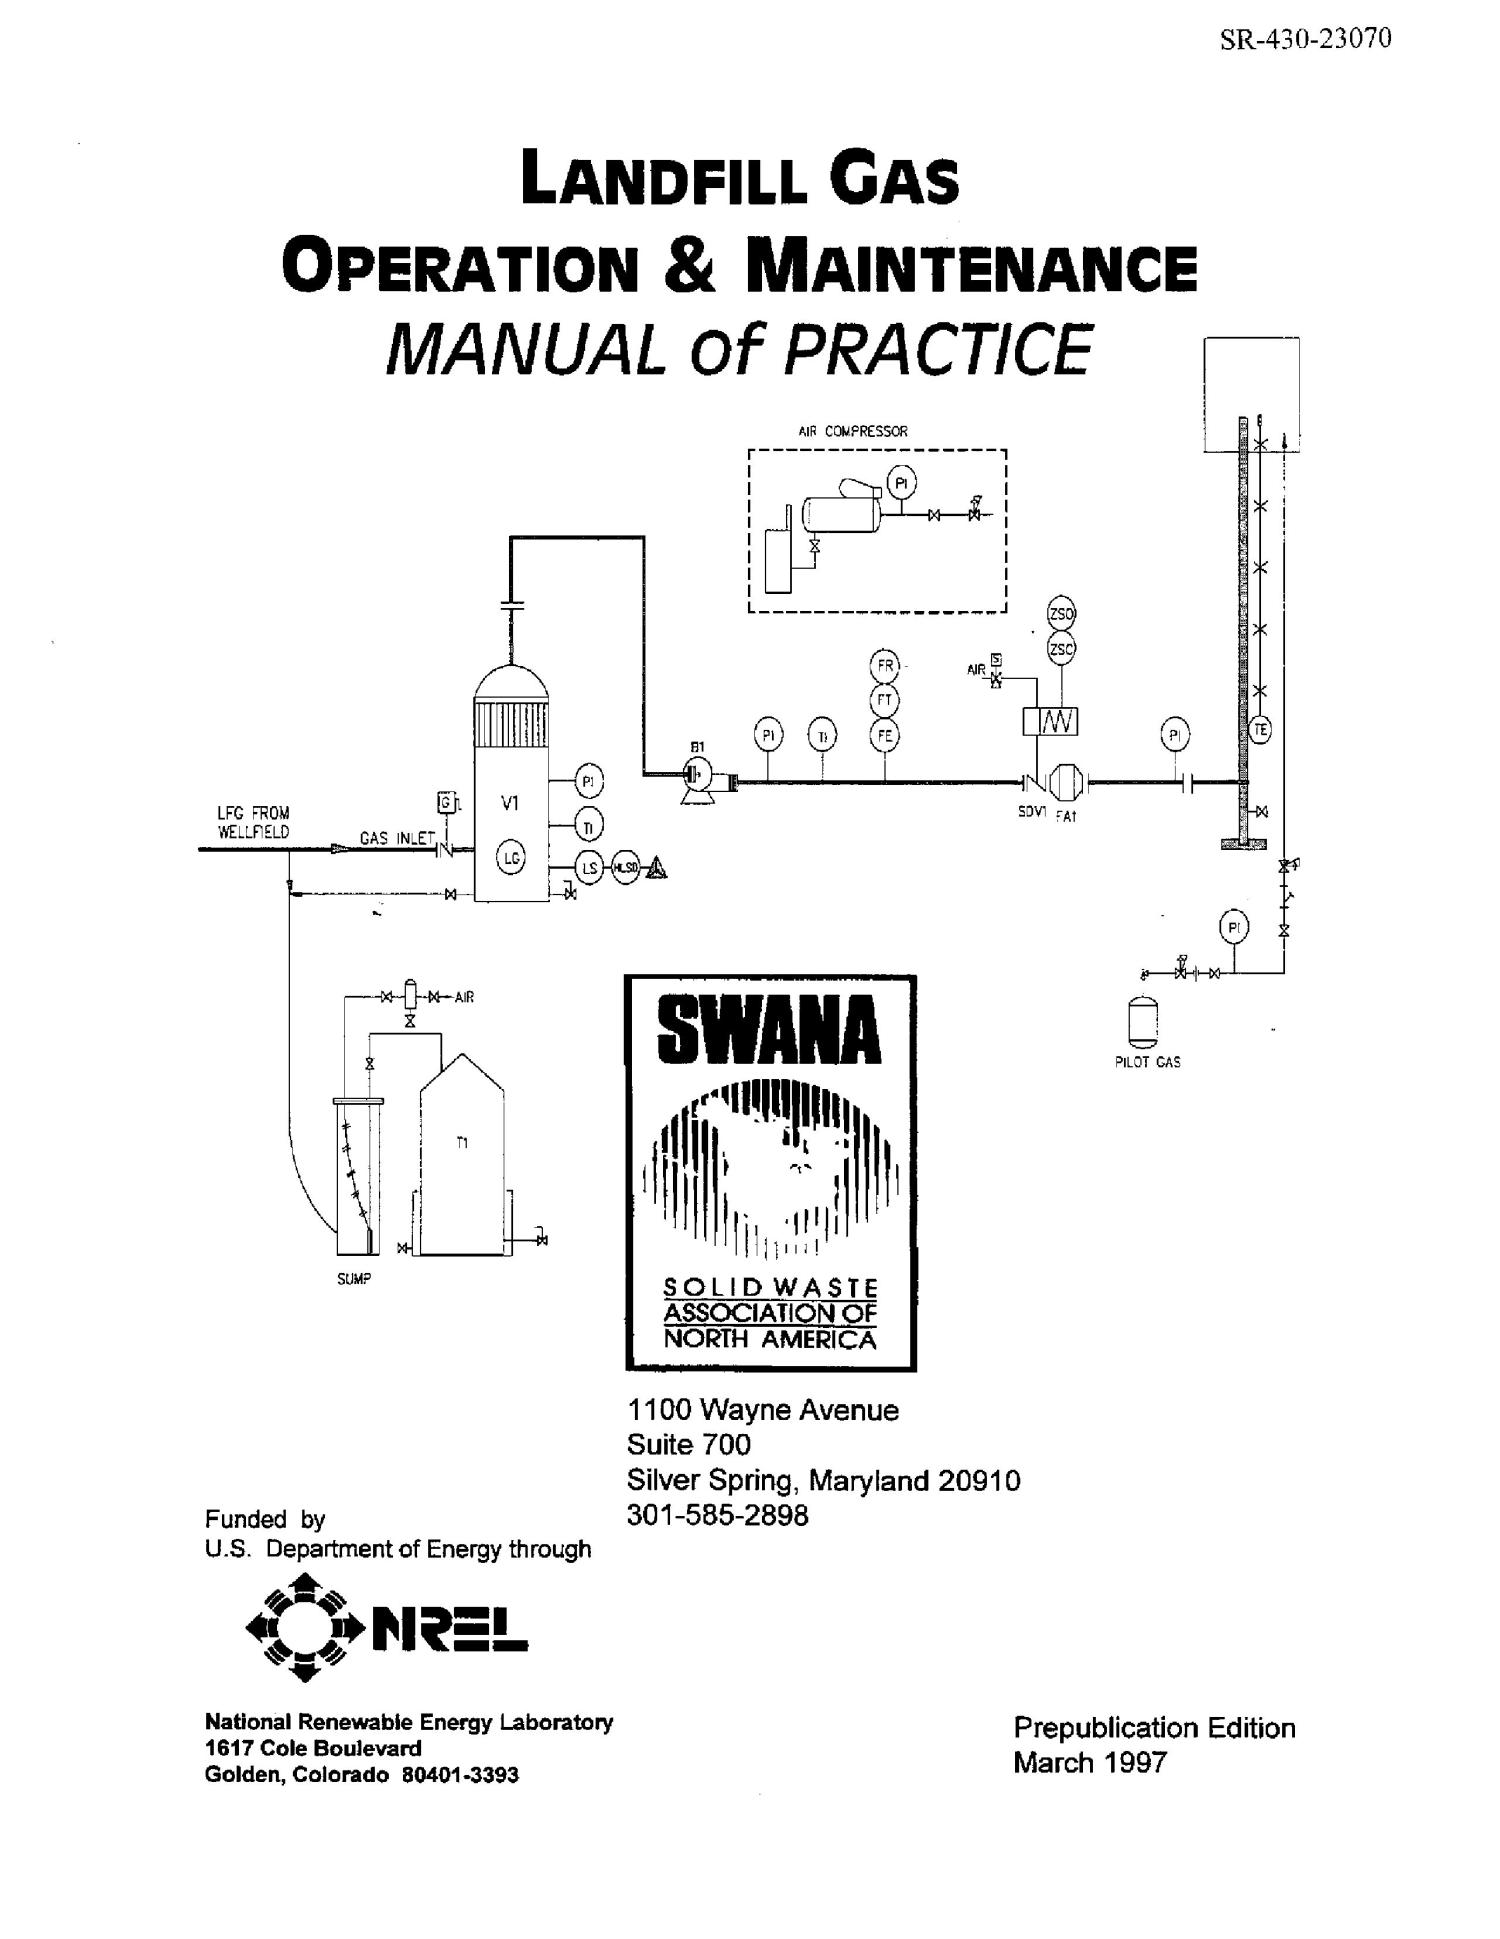 Landfill gas operation and maintenance manual of practice